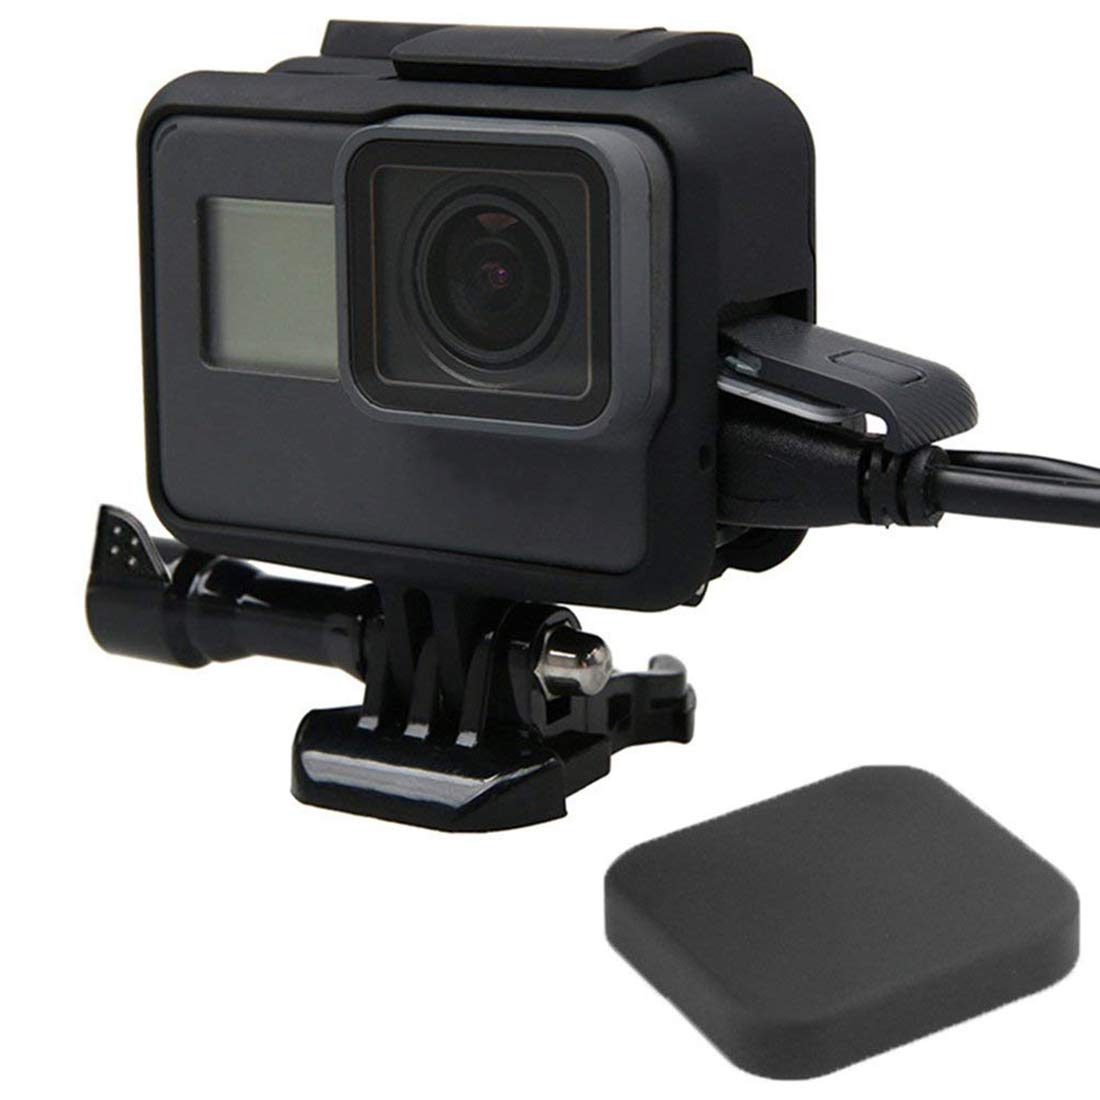 TOOGOO Frame Open Ca Lens Protective Cover Accessories Kit for Gopro Hero 5/6 by TOOGOO (Image #2)